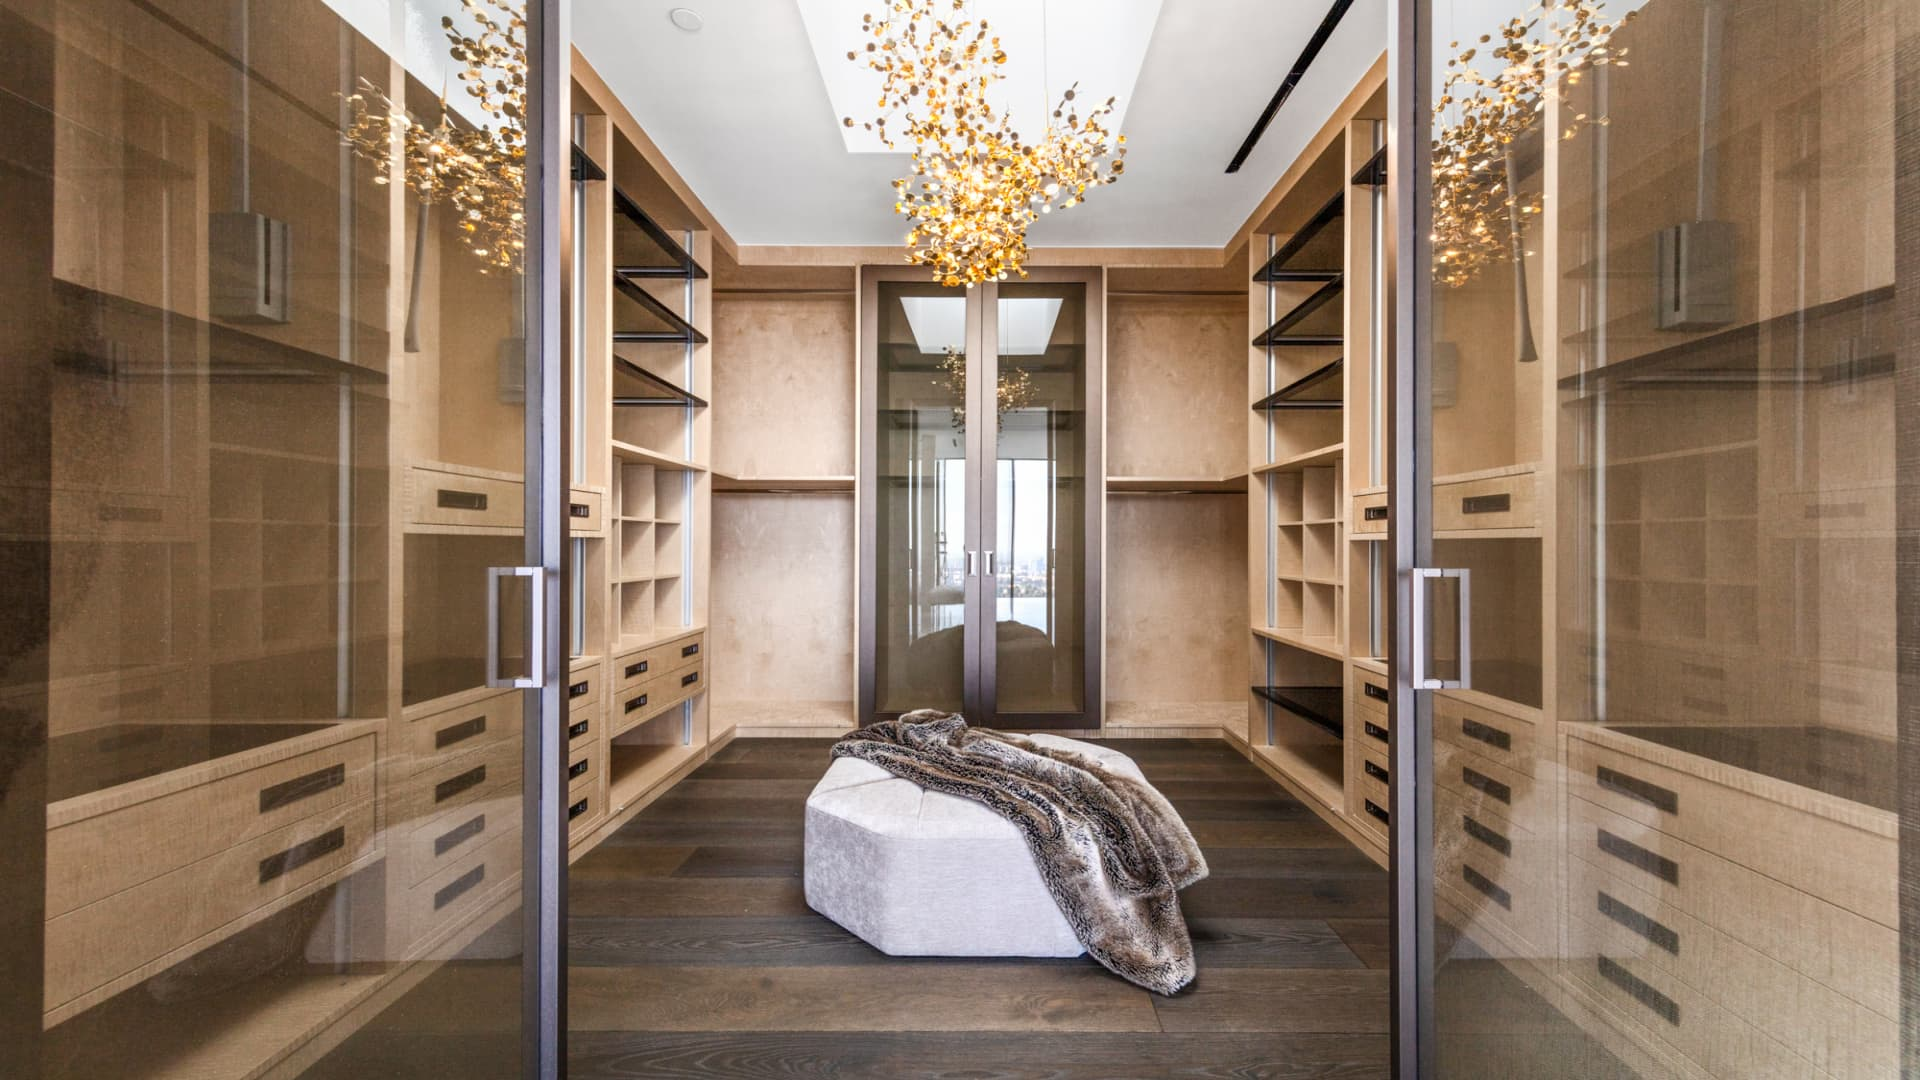 The owner's suite has two identical walk-in closets, each with a skylight and a gold chandelier.